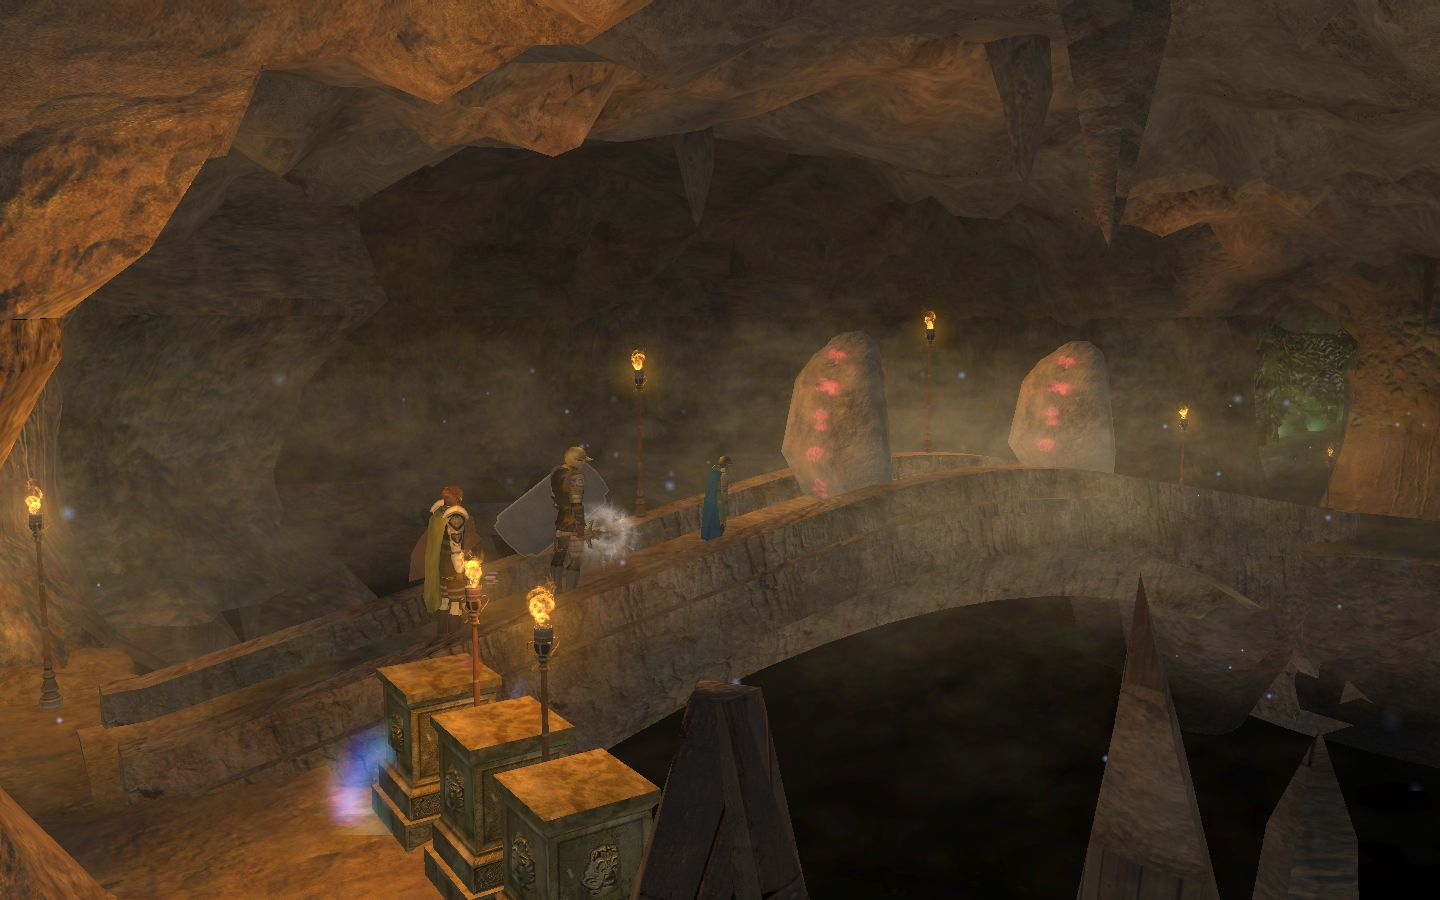 Neverwinter nights 2 sexy nude images